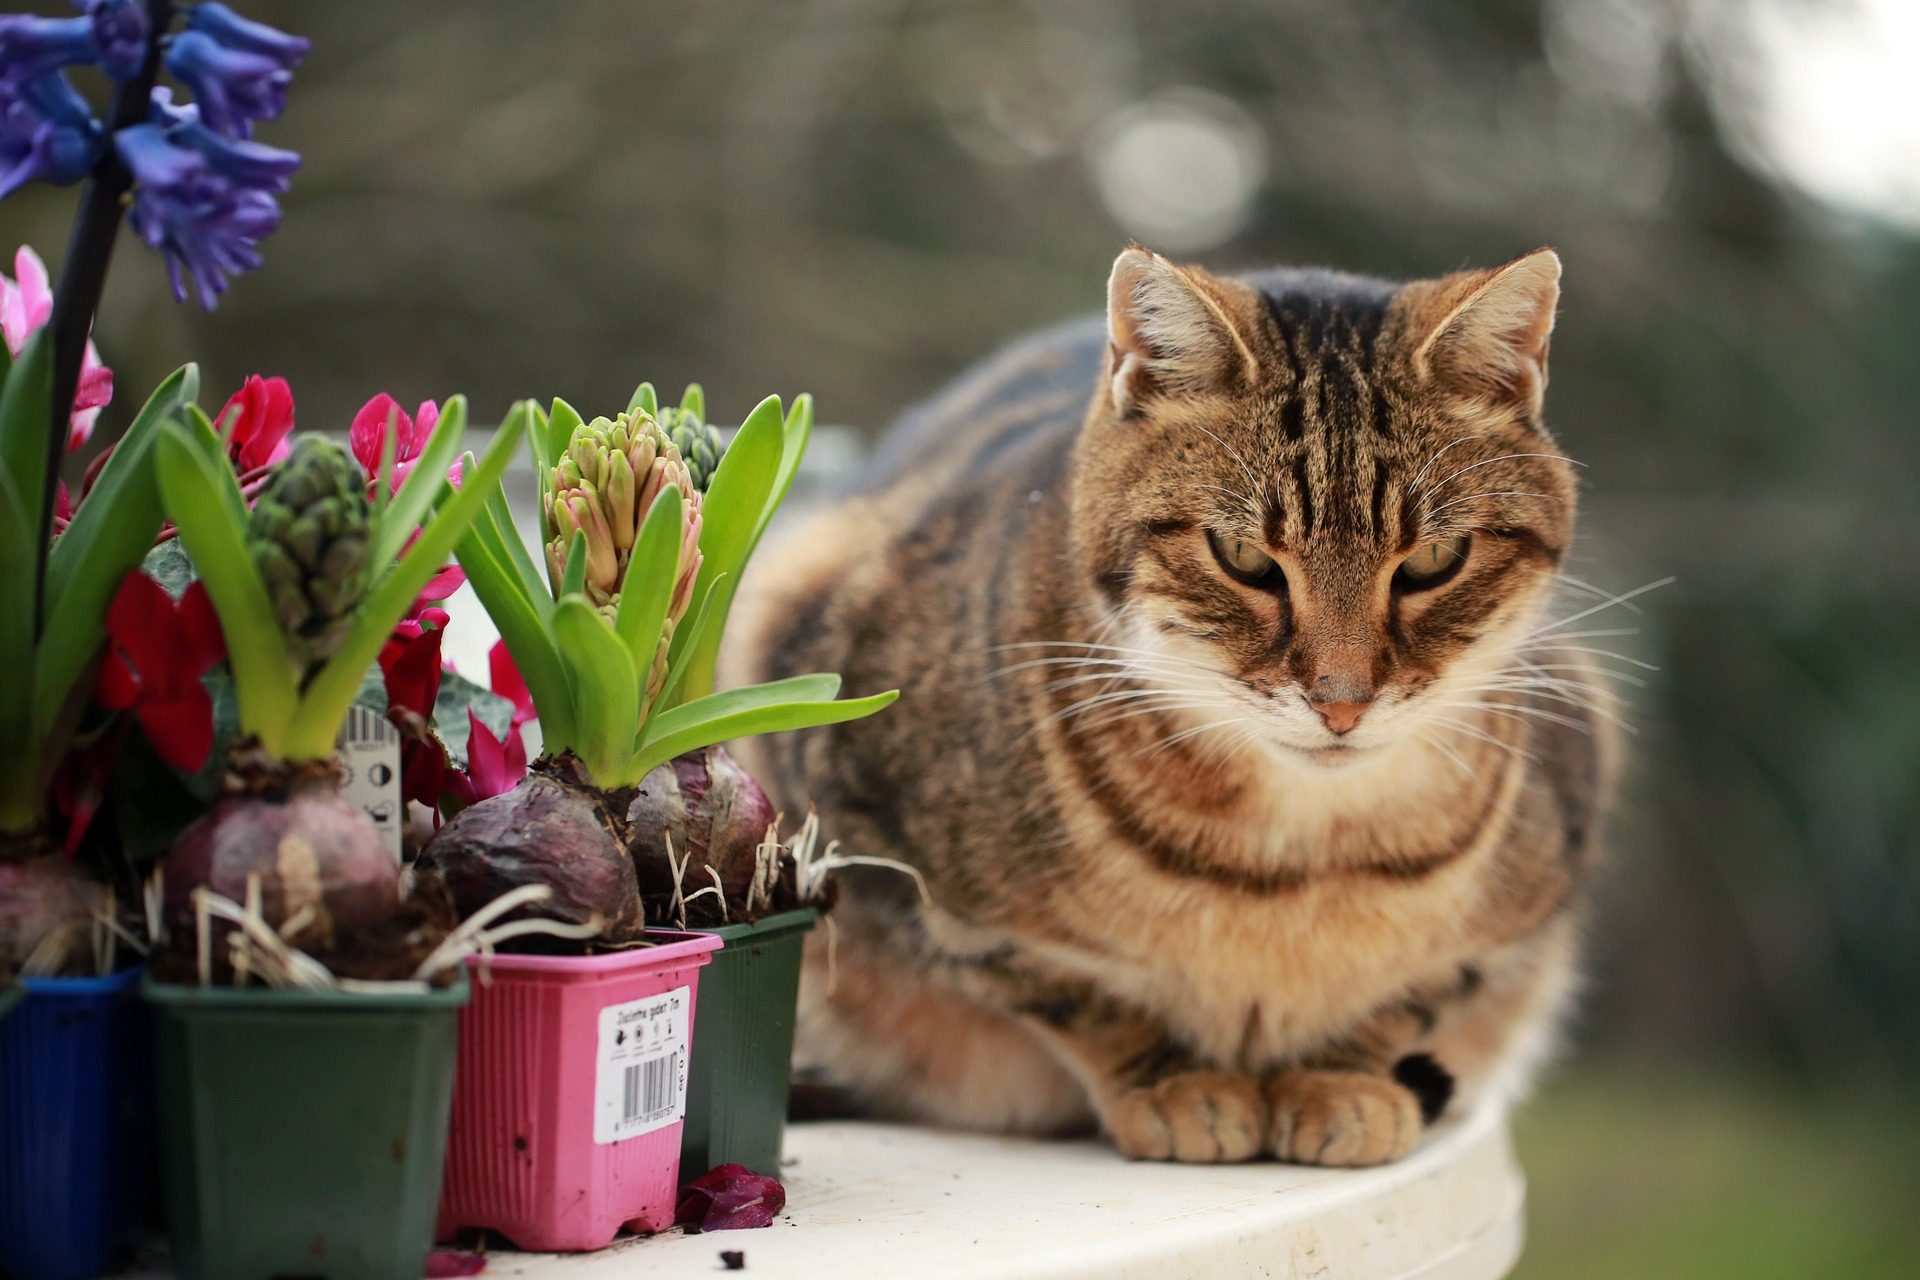 Are You Planting Pet Poisons in Your Yard?